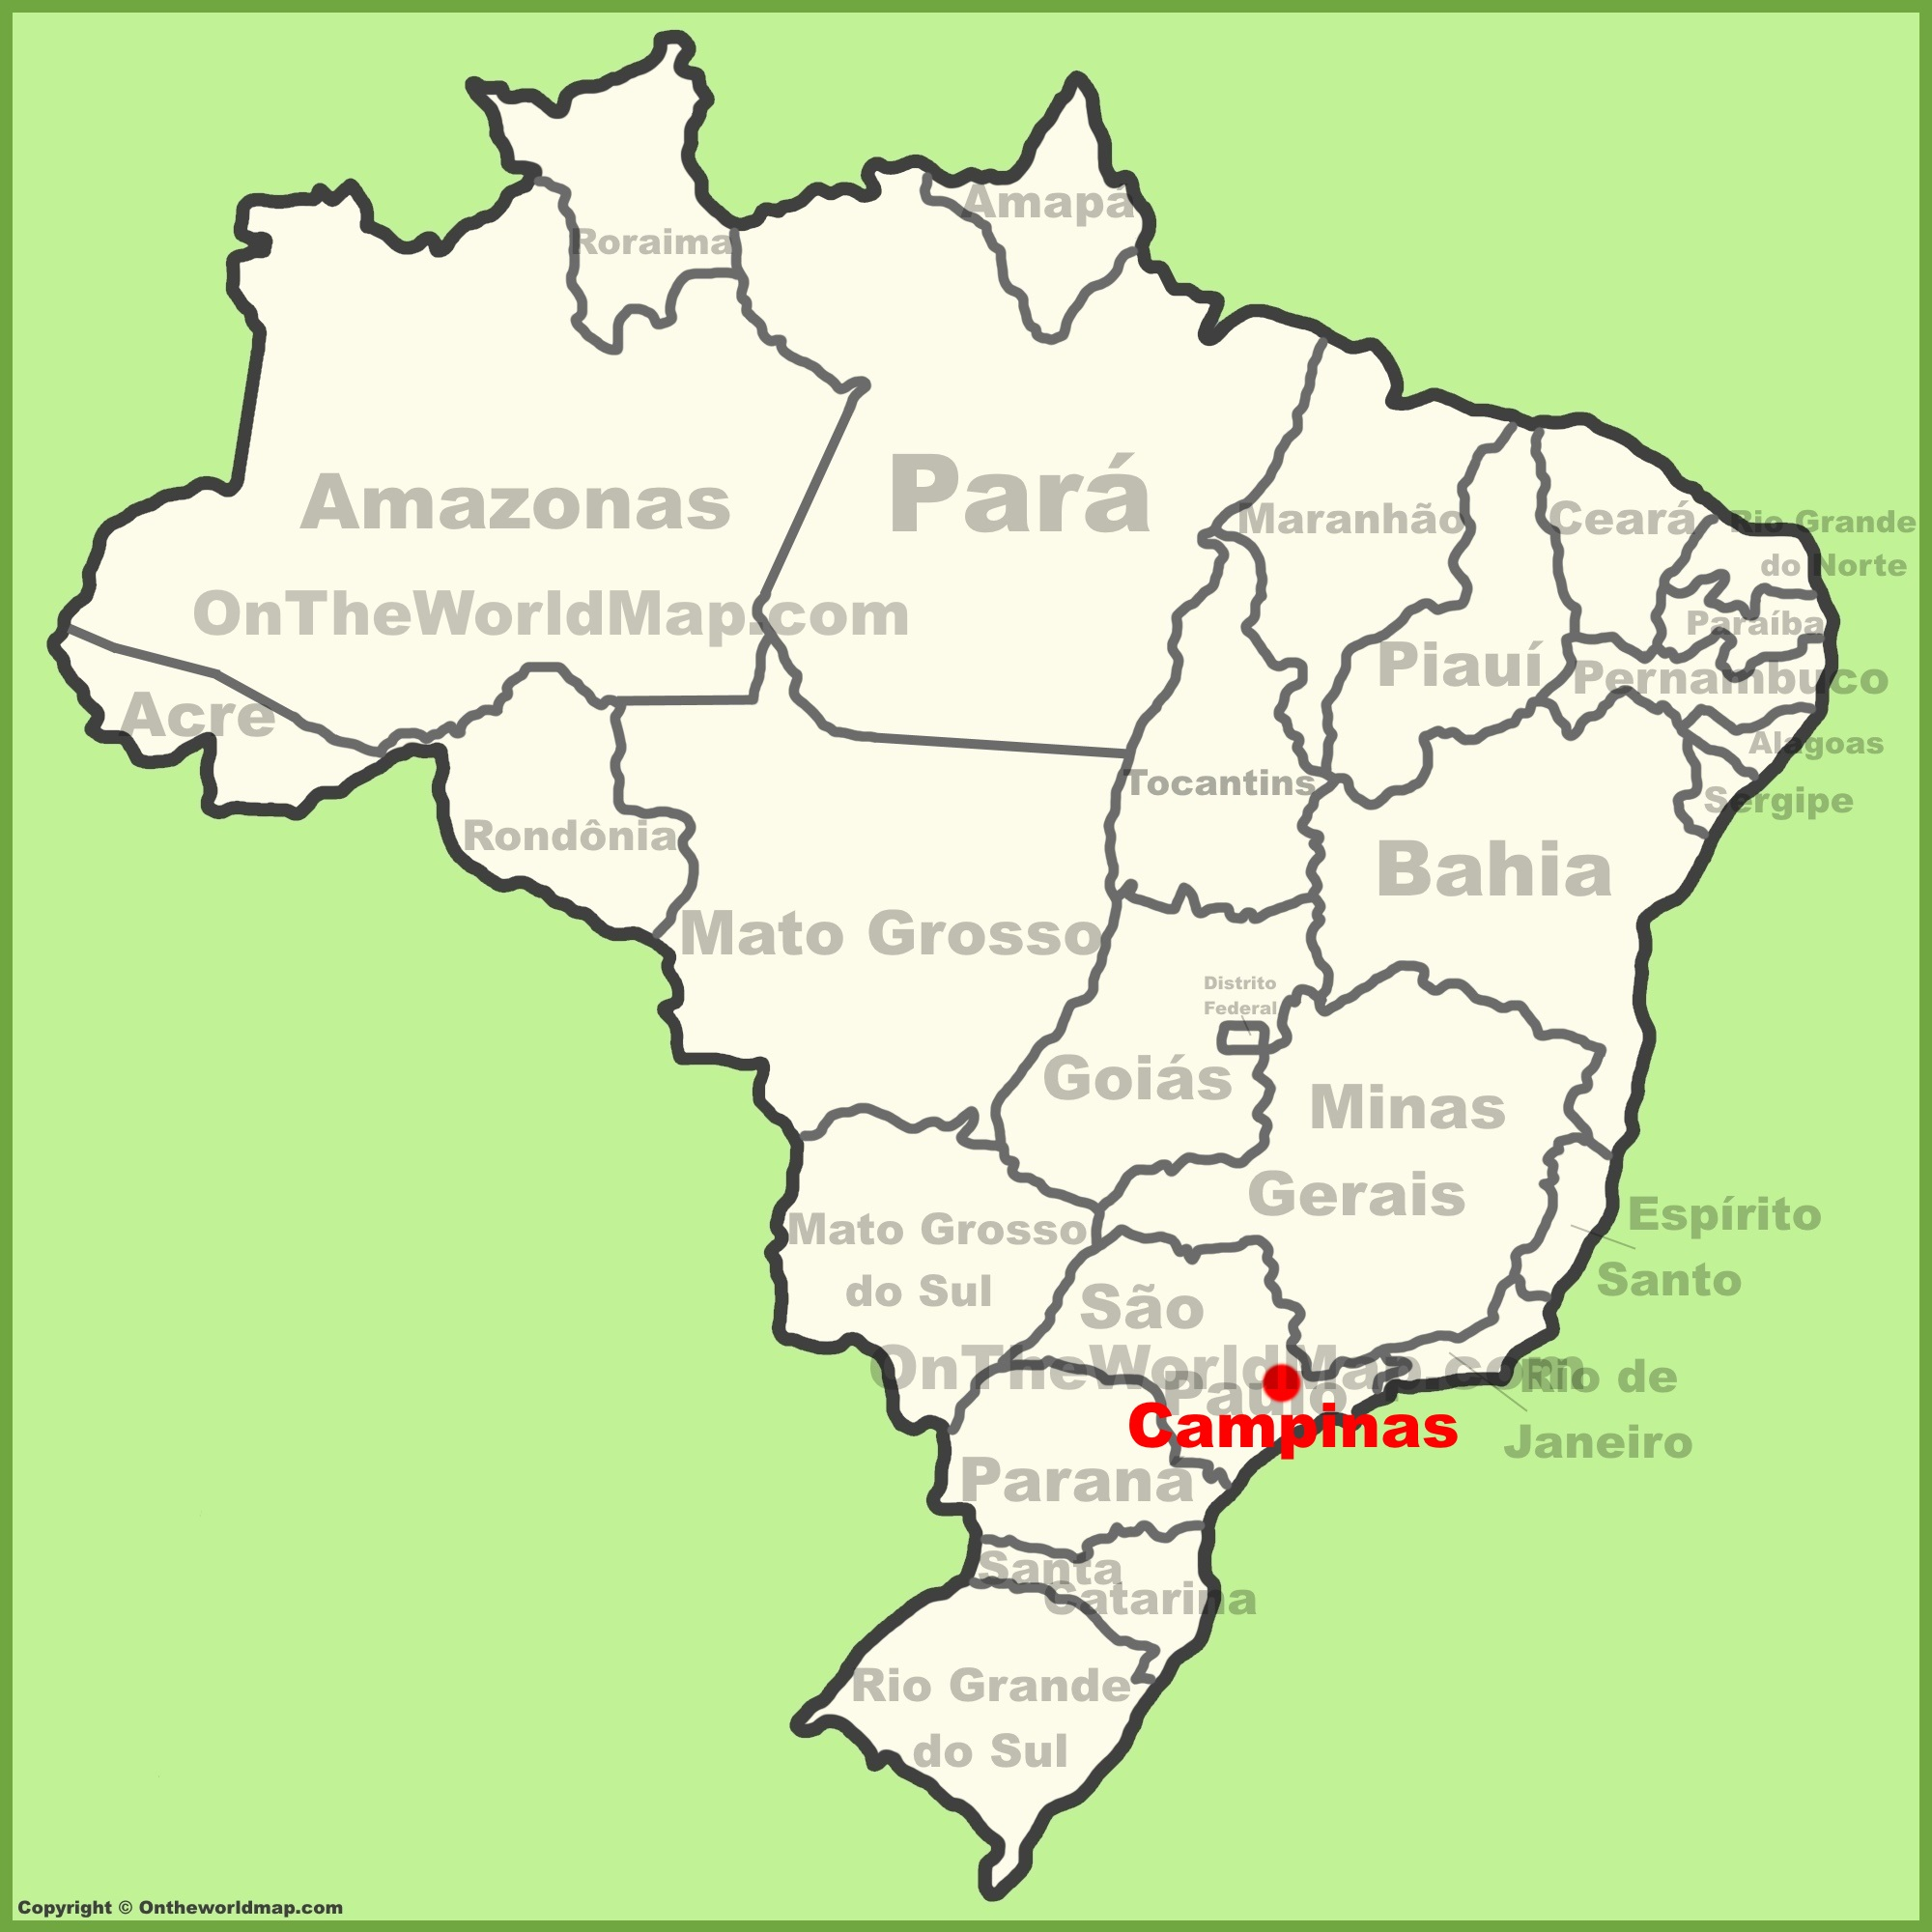 Campinas Brazil Map Campinas location on the Brazil map